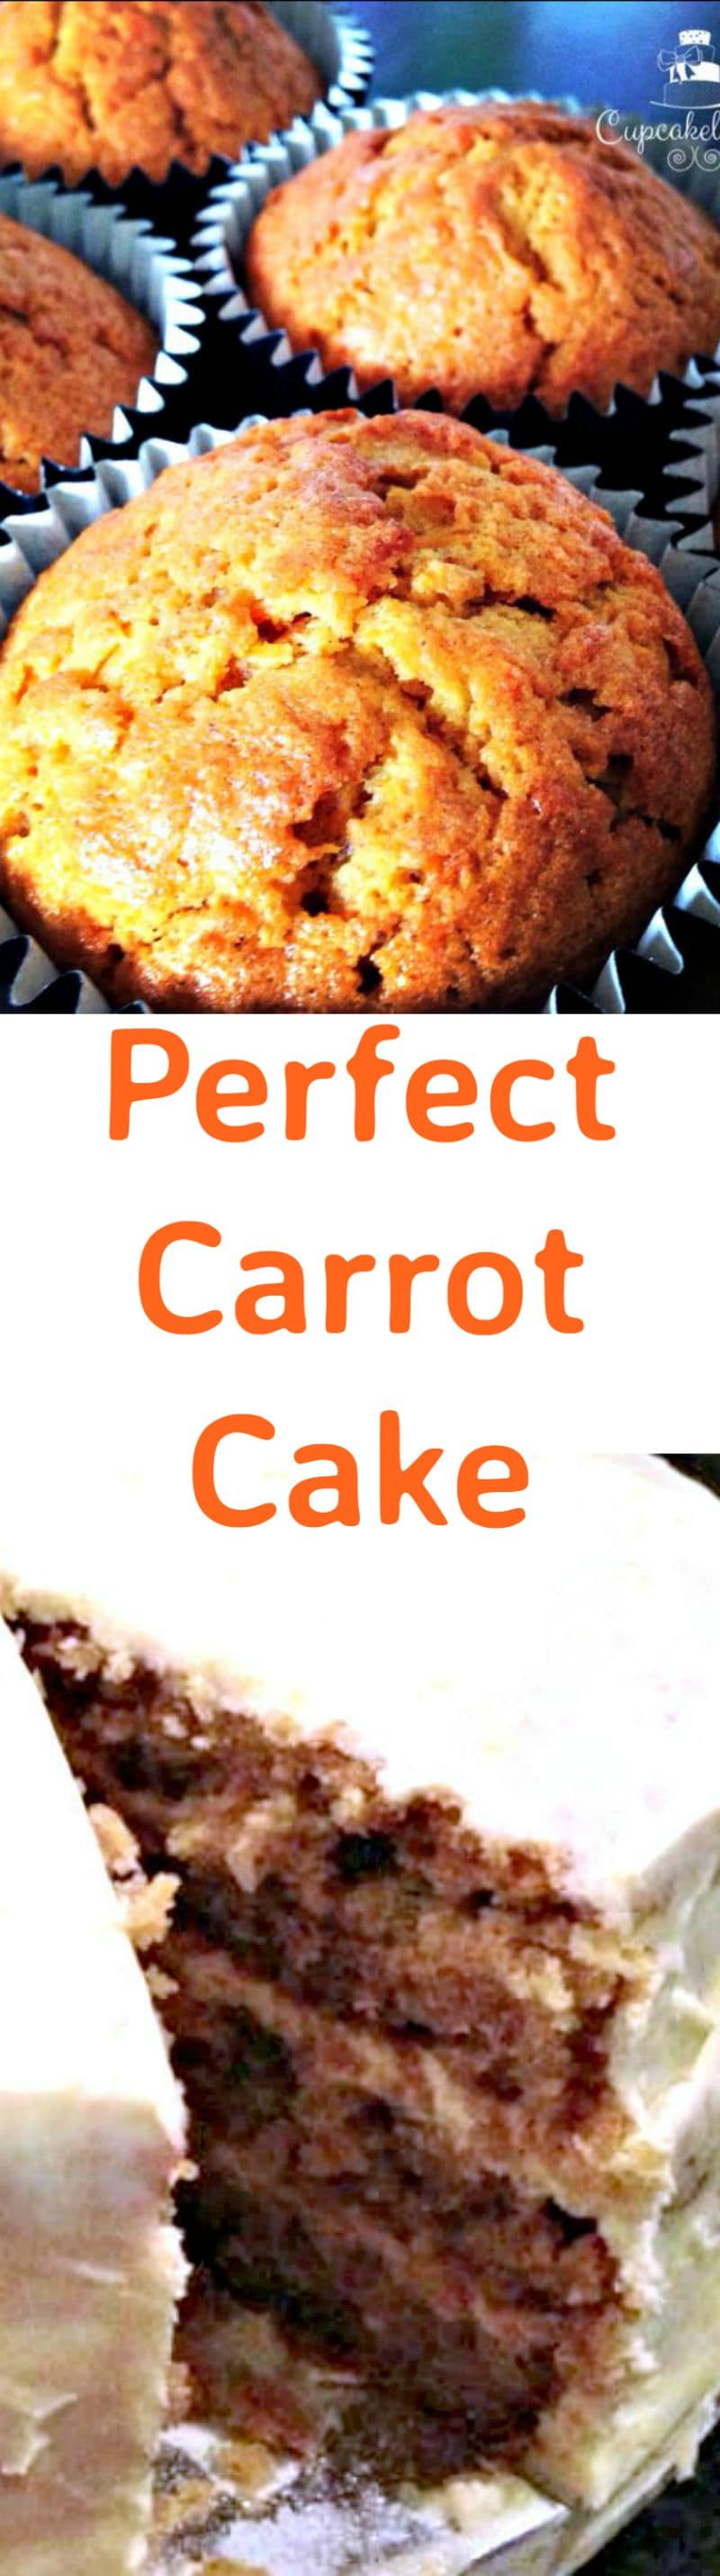 Perfect Carrot Cake - A wonderful moist cake with a delicious orange flavoured frosting. Very popular! Make yourself a cup of tea and enjoy a slice or two! Make a cake or cupcakes. You choose!